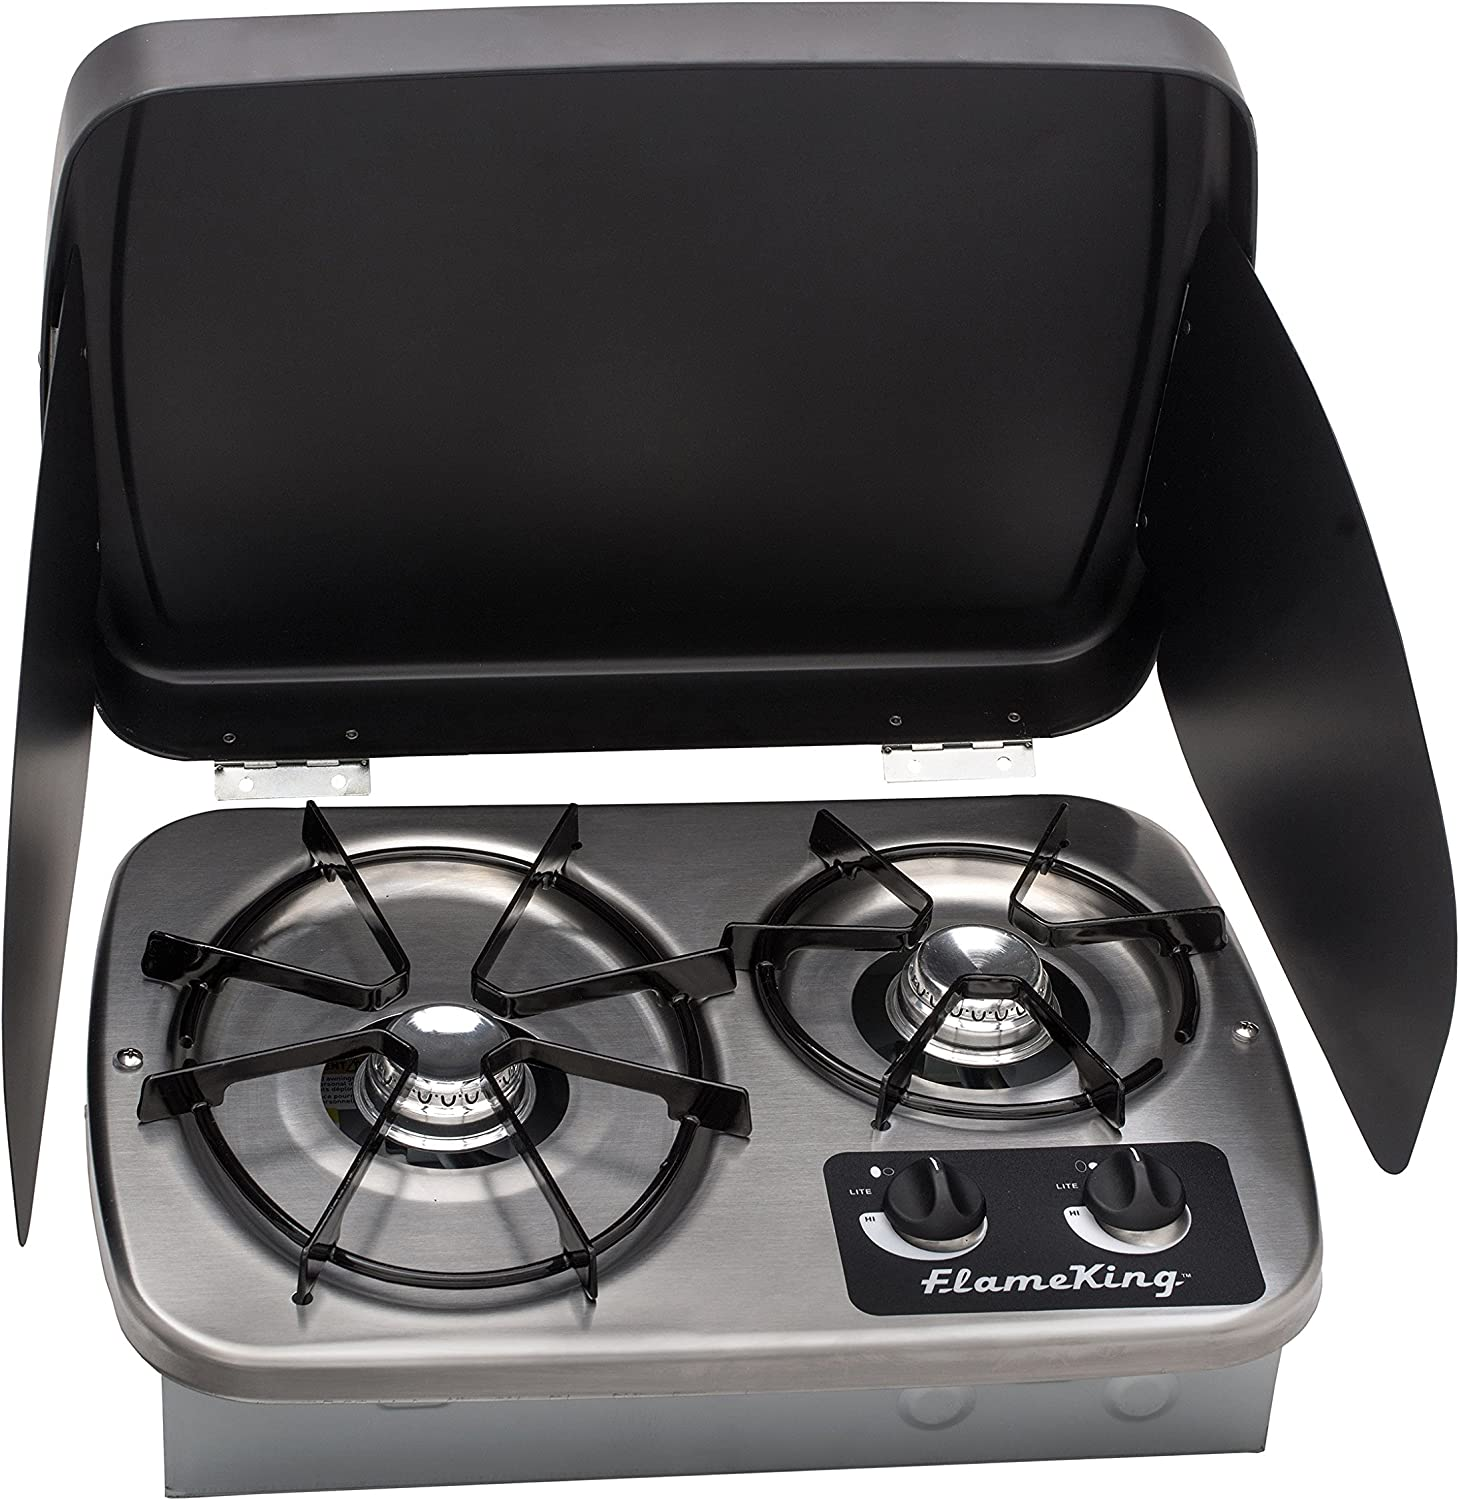 Flame Quality inspection King YSNHT600 2 Burner Stove Propane Cooktop Built-In sale RV